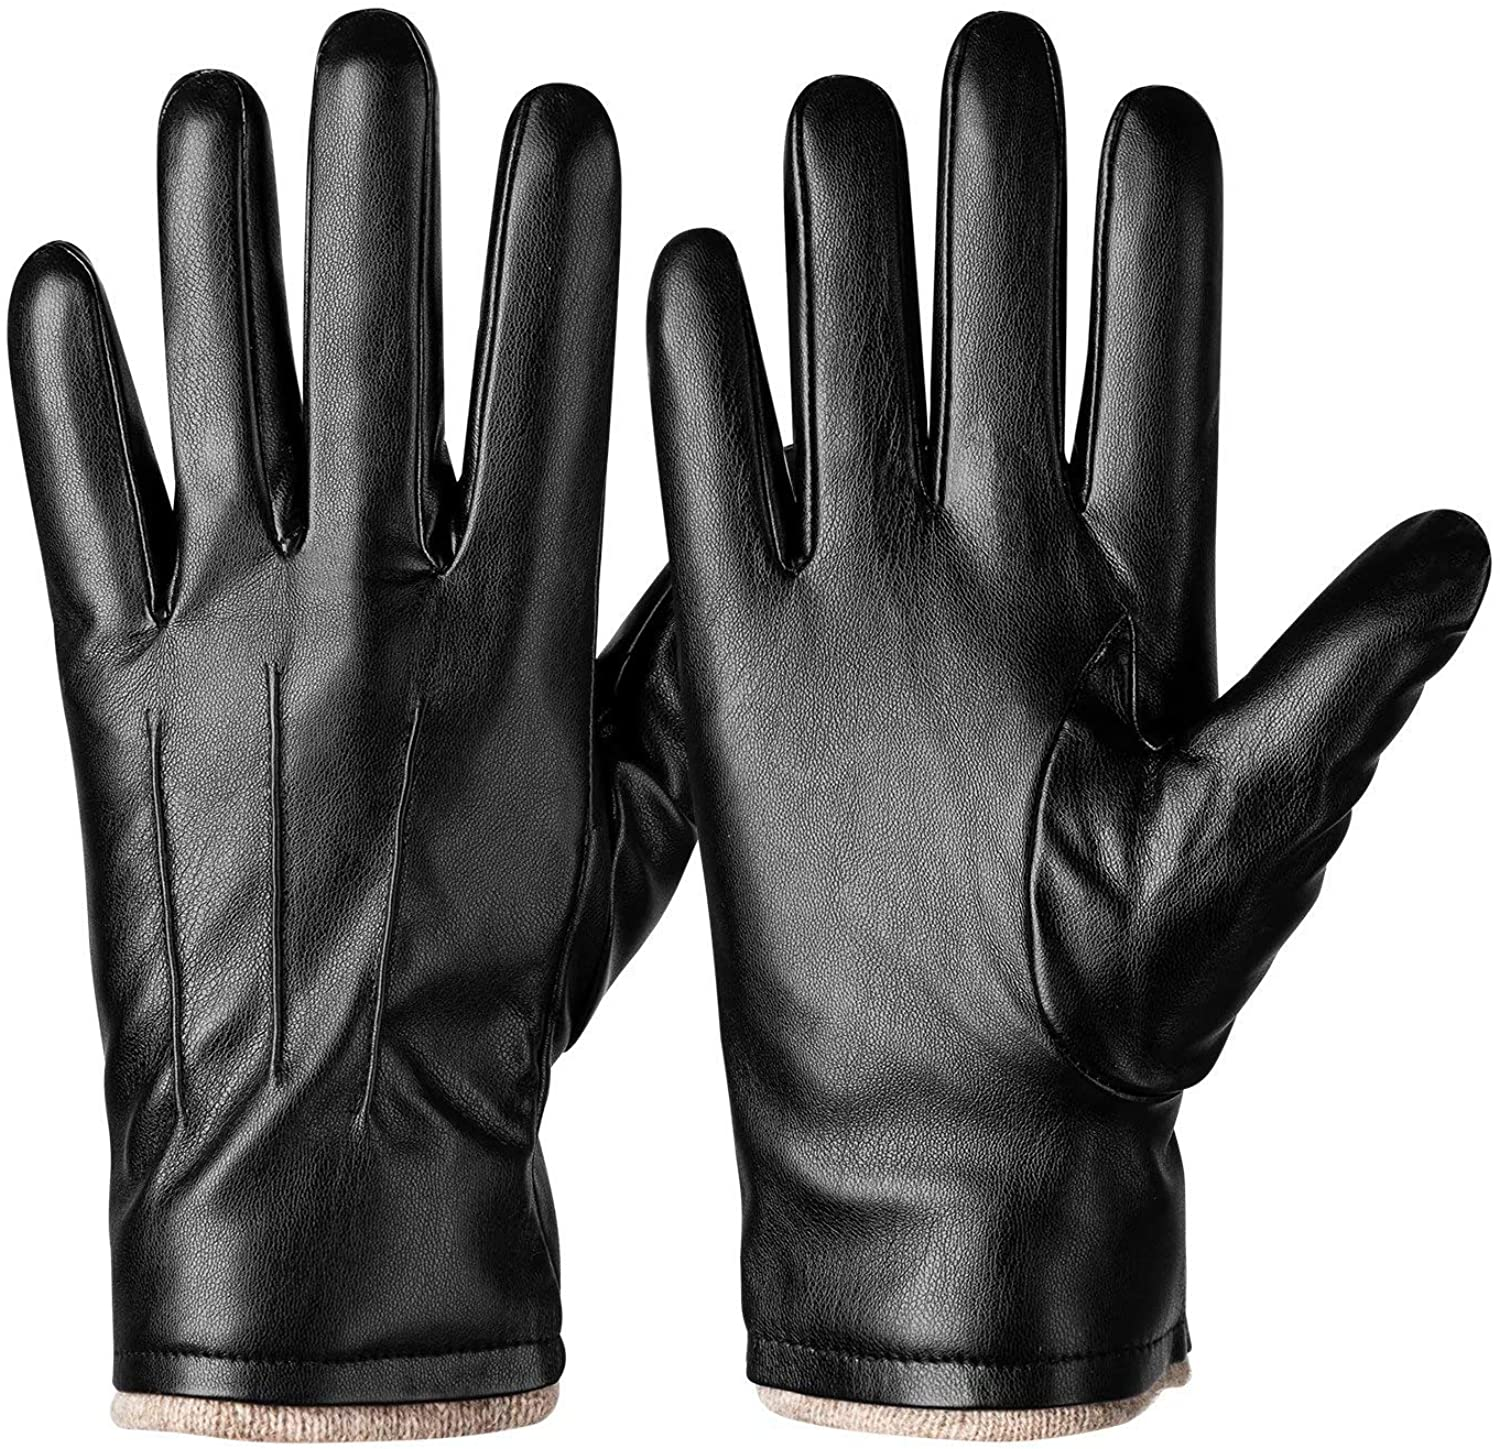 Winter PU Leather Gloves For Men, Warm Thermal Touchscreen Texting Typing Dress Driving Motorcycle Gloves With Wool Lining